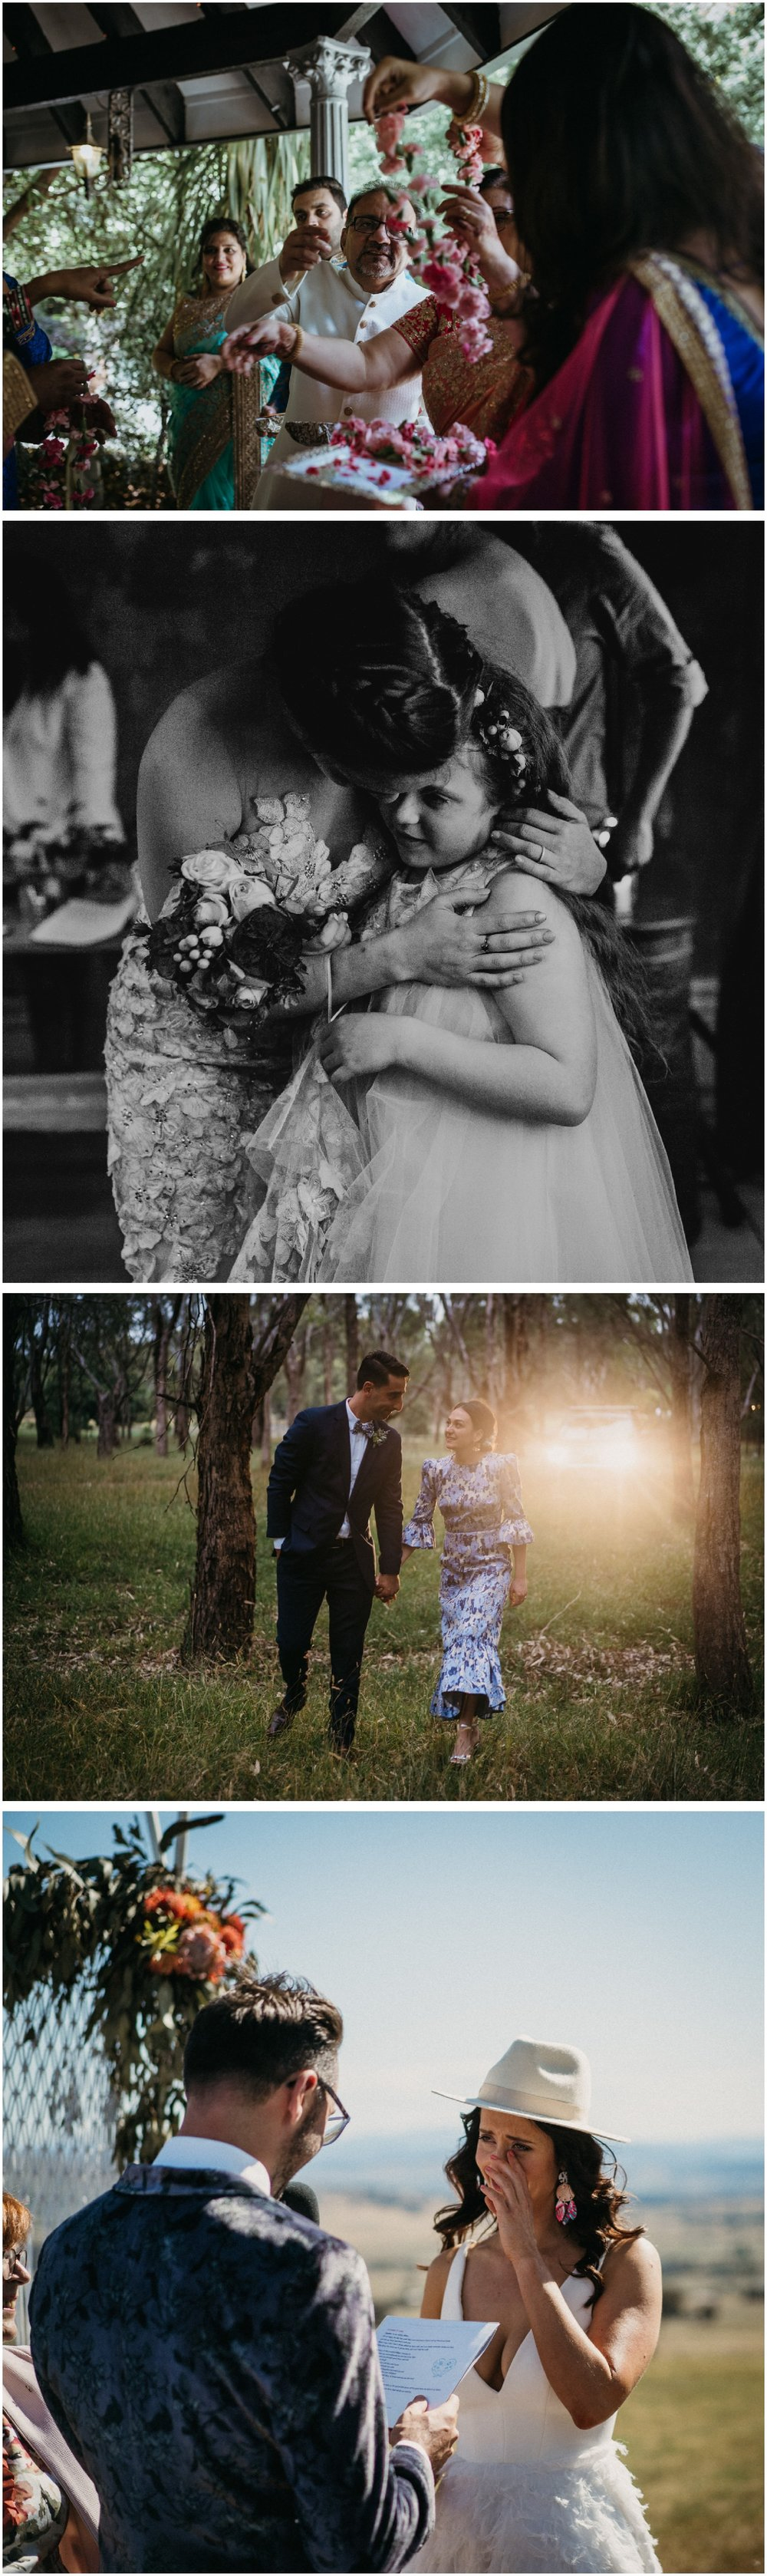 Melbourne Wedding Photographer - 2018 in review -766A1924.jpg